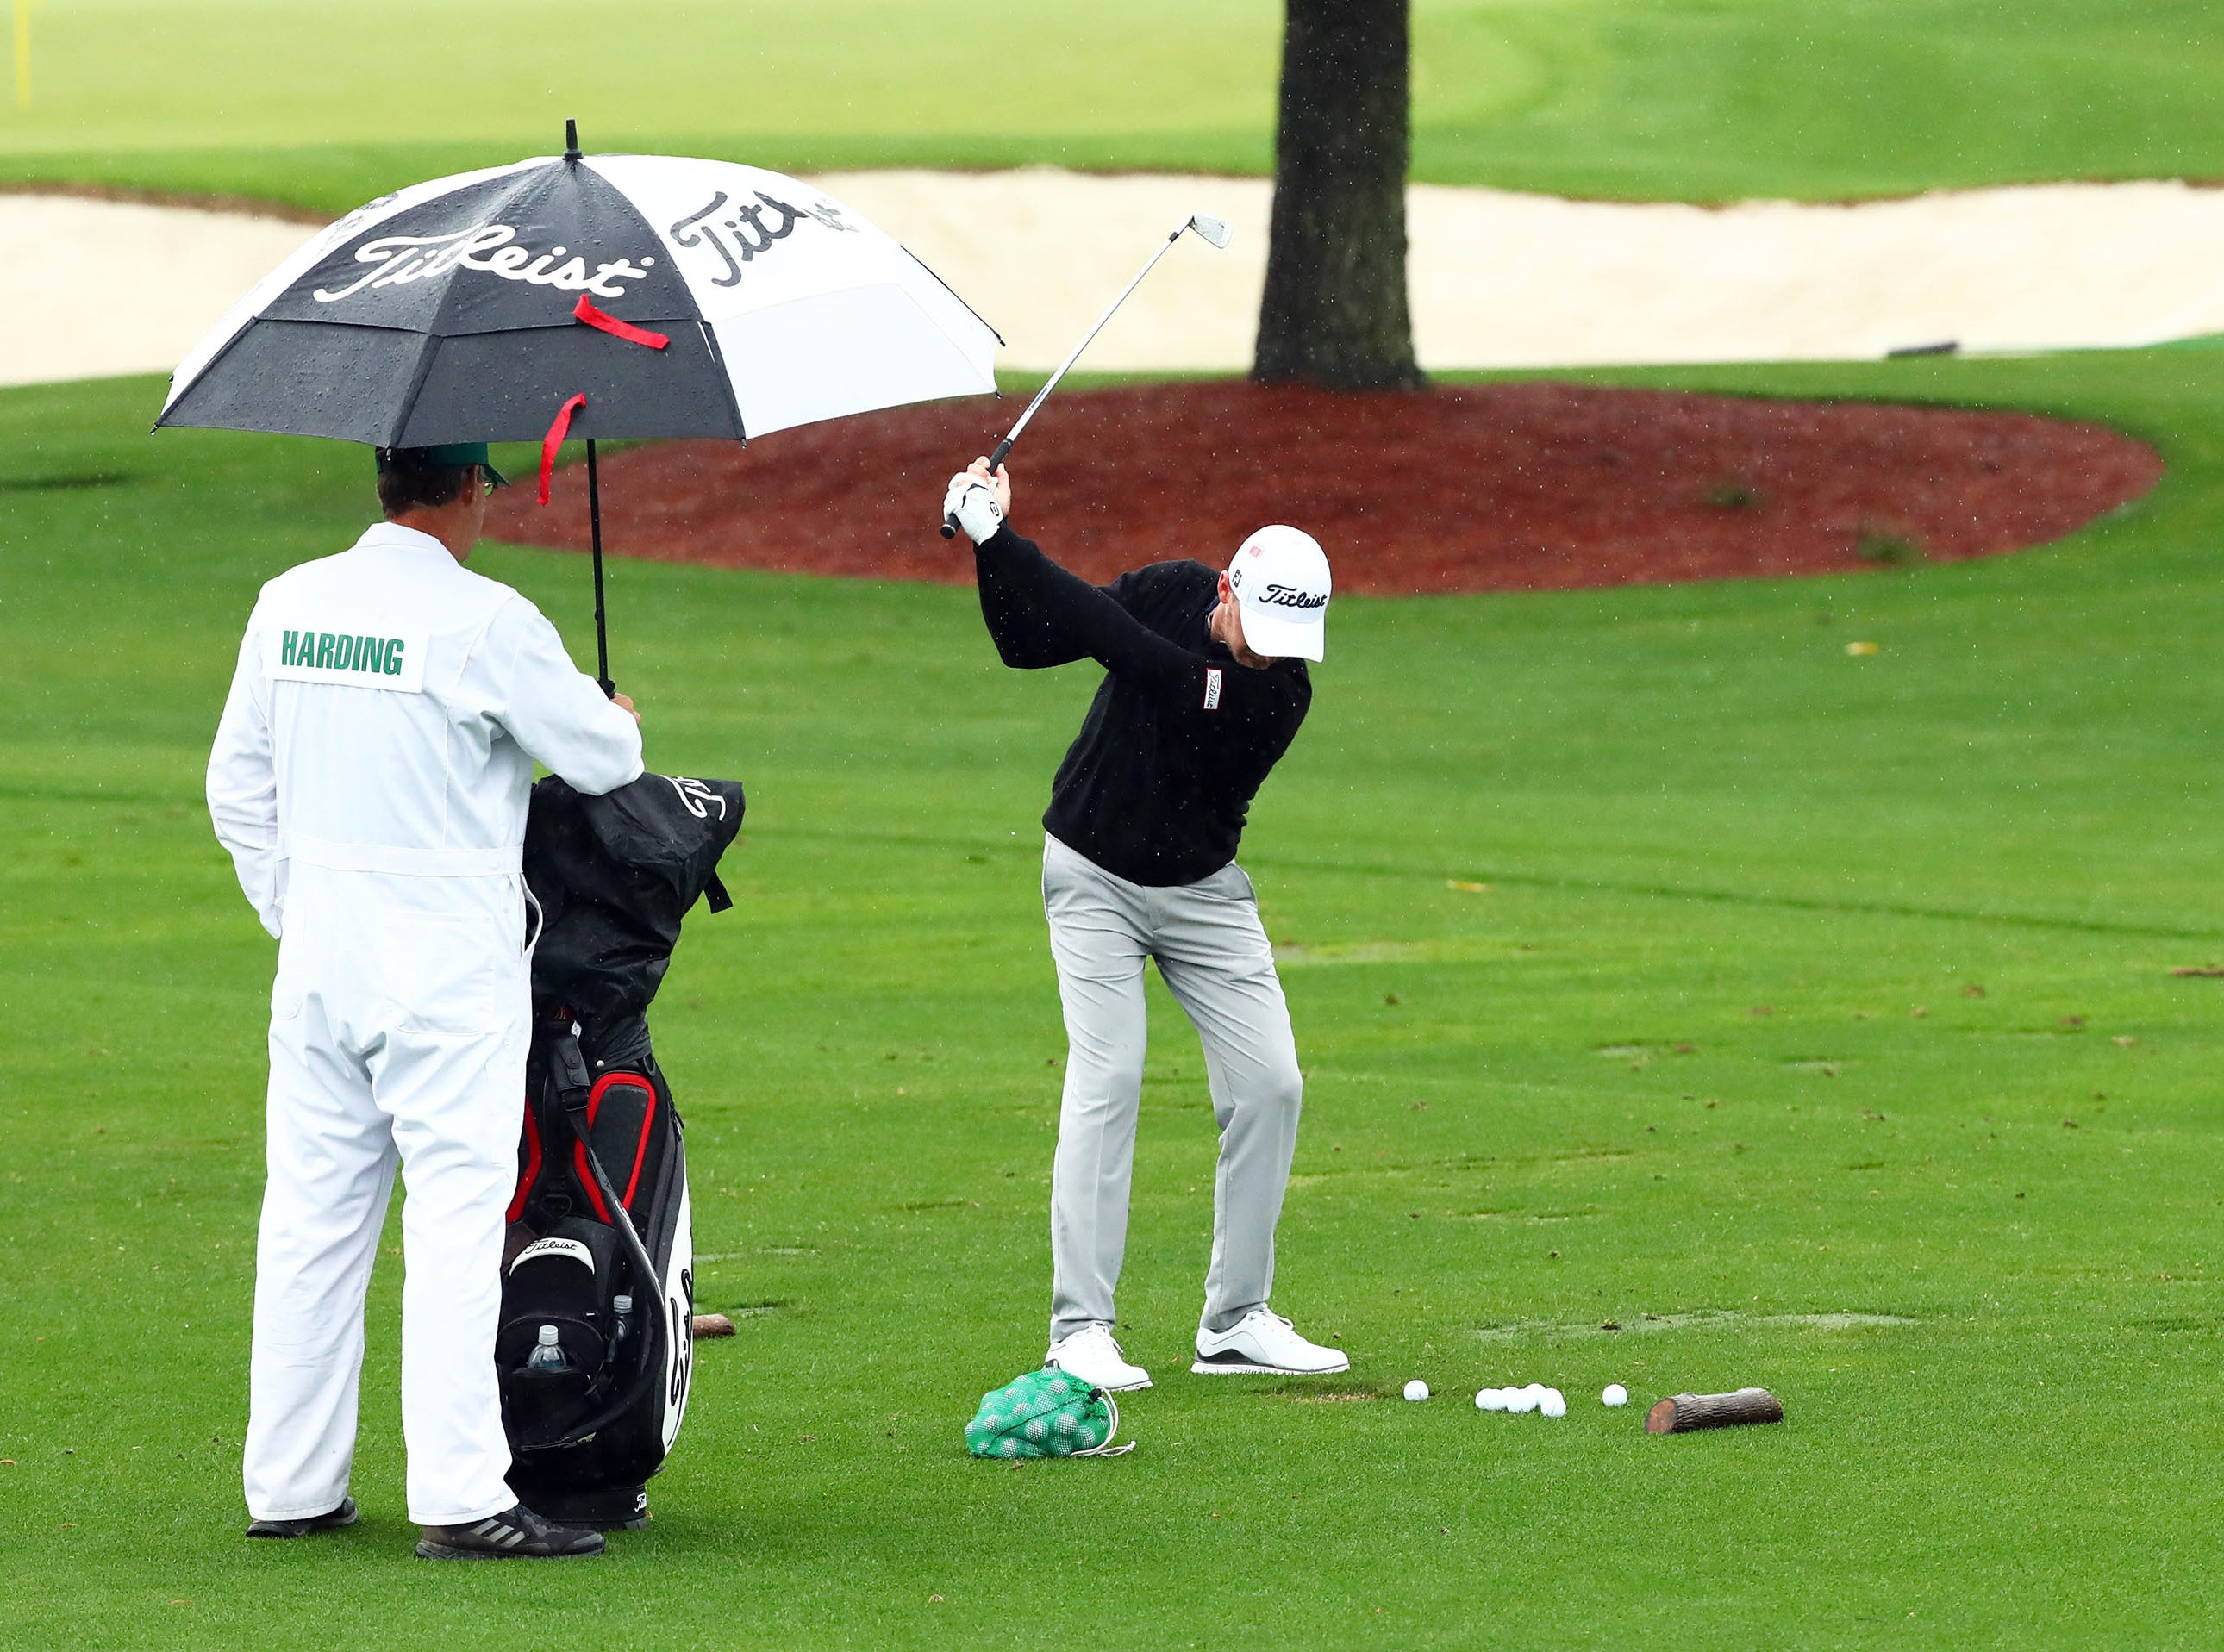 Apr 9, 2019; Augusta, GA, USA; Justin Harding of South Africa hits balls at the practice facility during a practice round for The Masters golf tournament at Augusta National Golf Club. Mandatory Credit: Rob Schumacher-USA TODAY Sports